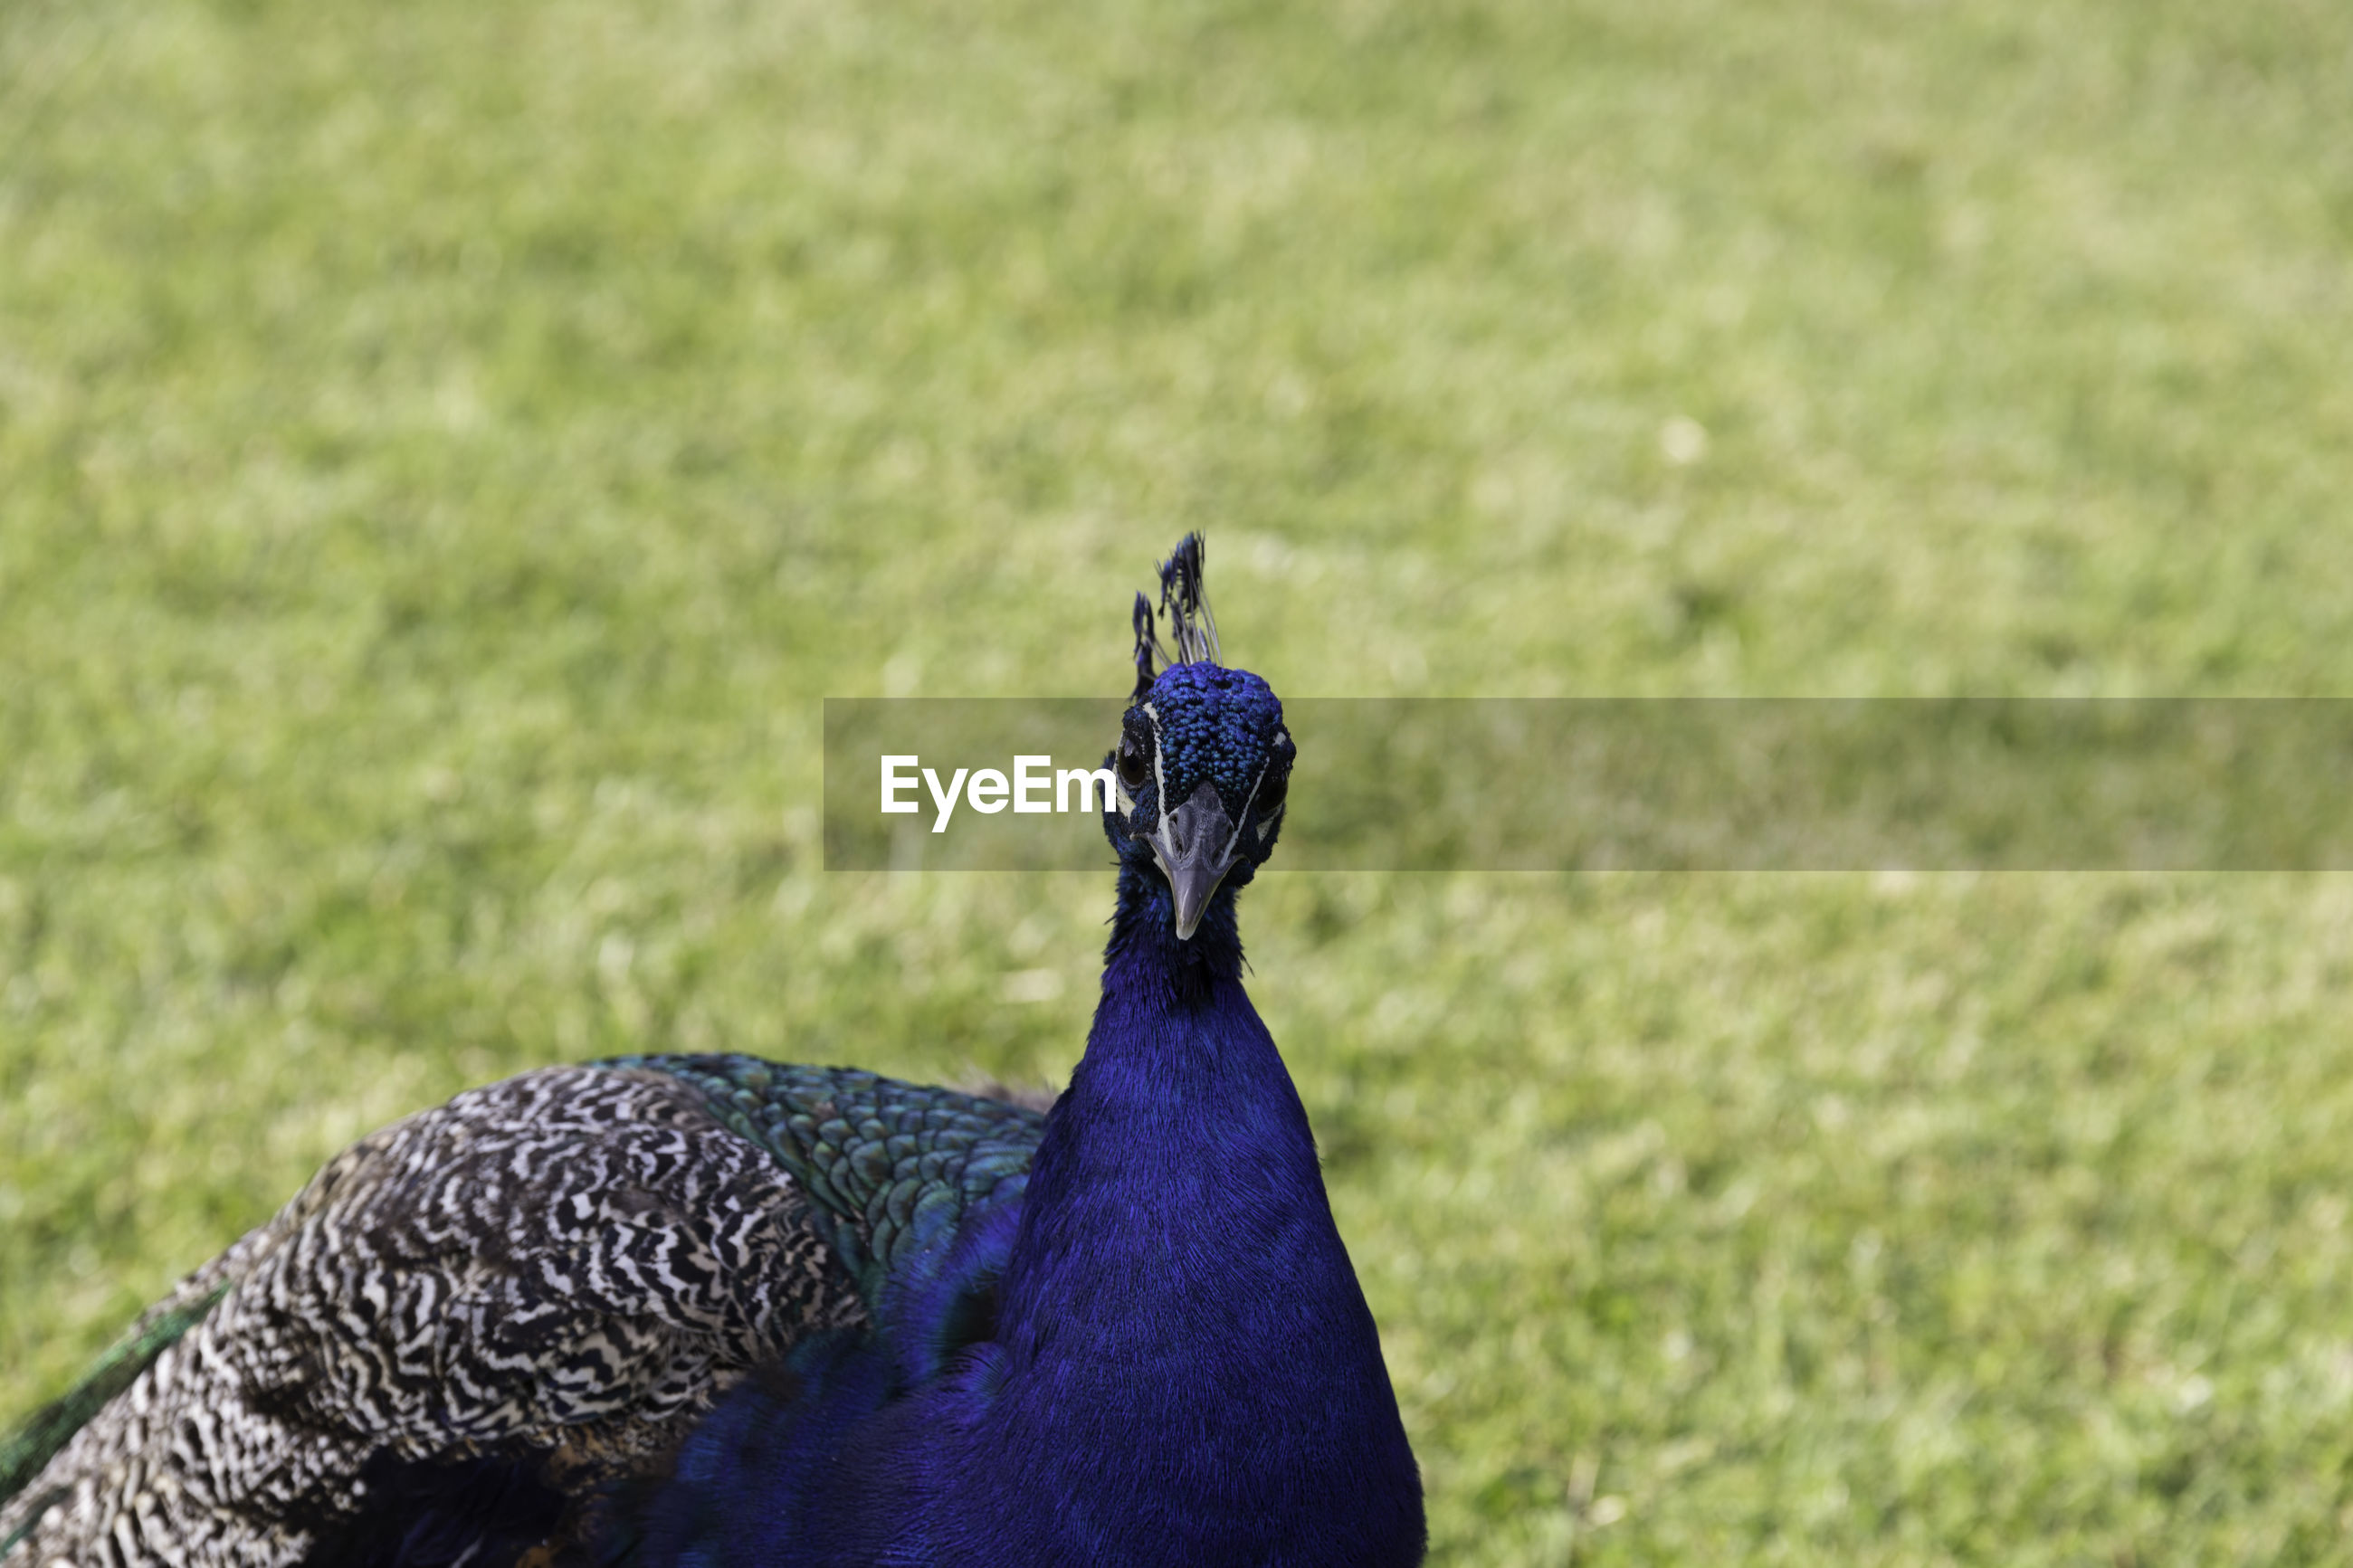 CLOSE-UP OF A PEACOCK ON FIELD